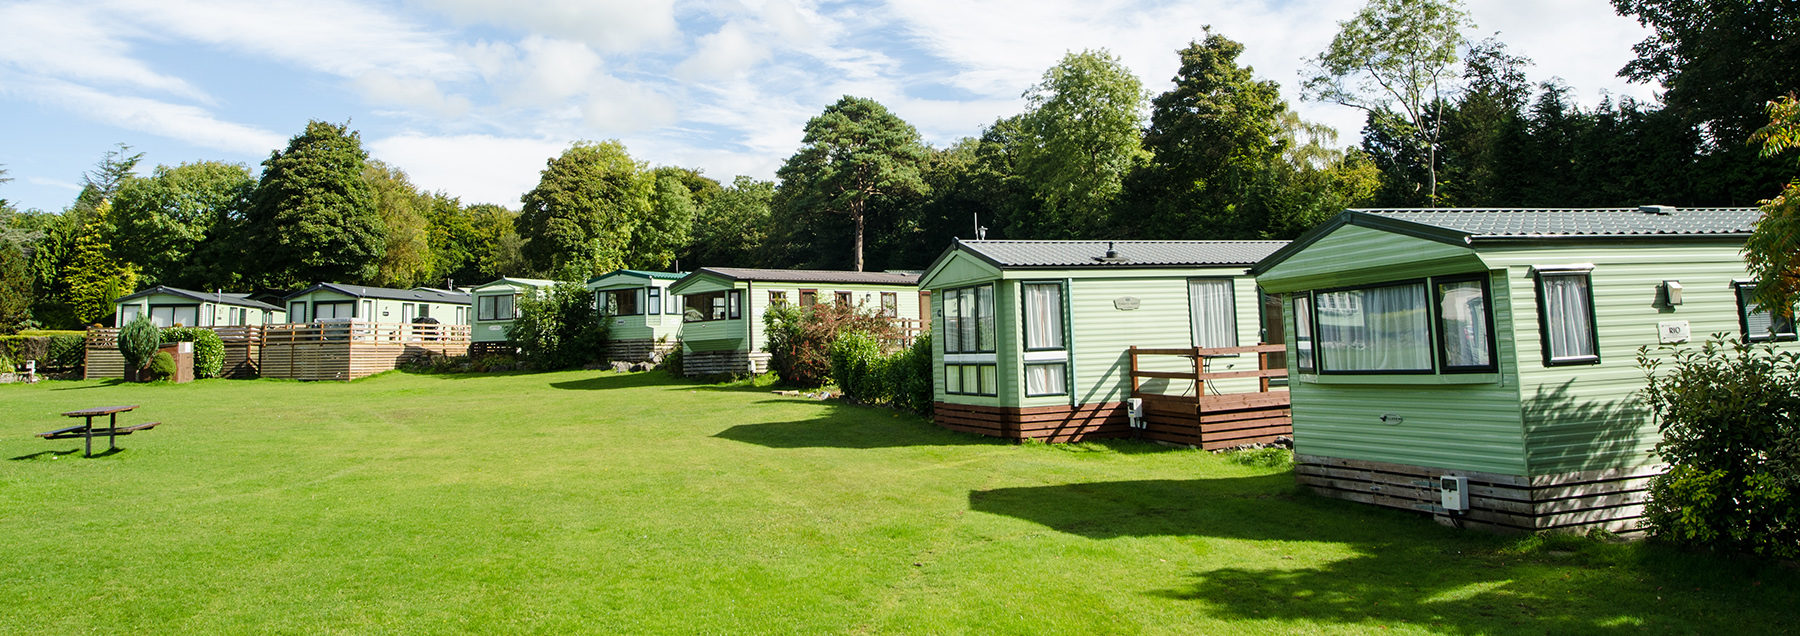 Caravan Sites Camping Pods In Cumbria Fell End